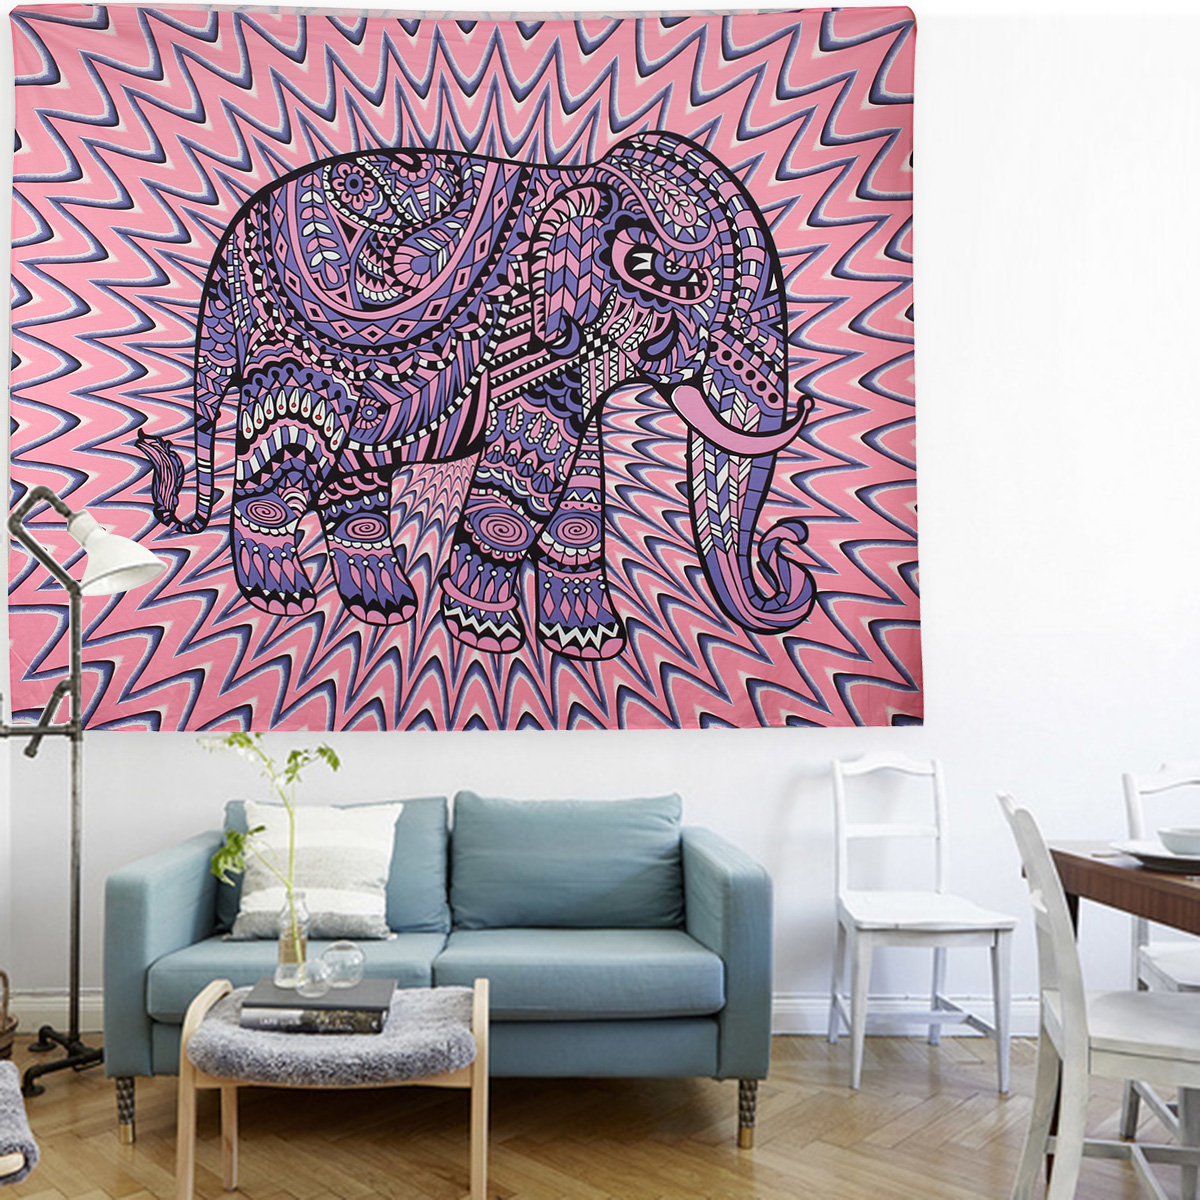 Elephant Mandala Tapestry Throw Towel Hippie Tapestry Floral Printed Home Decor Wall Tapestries Bedspread 210*150CM 16